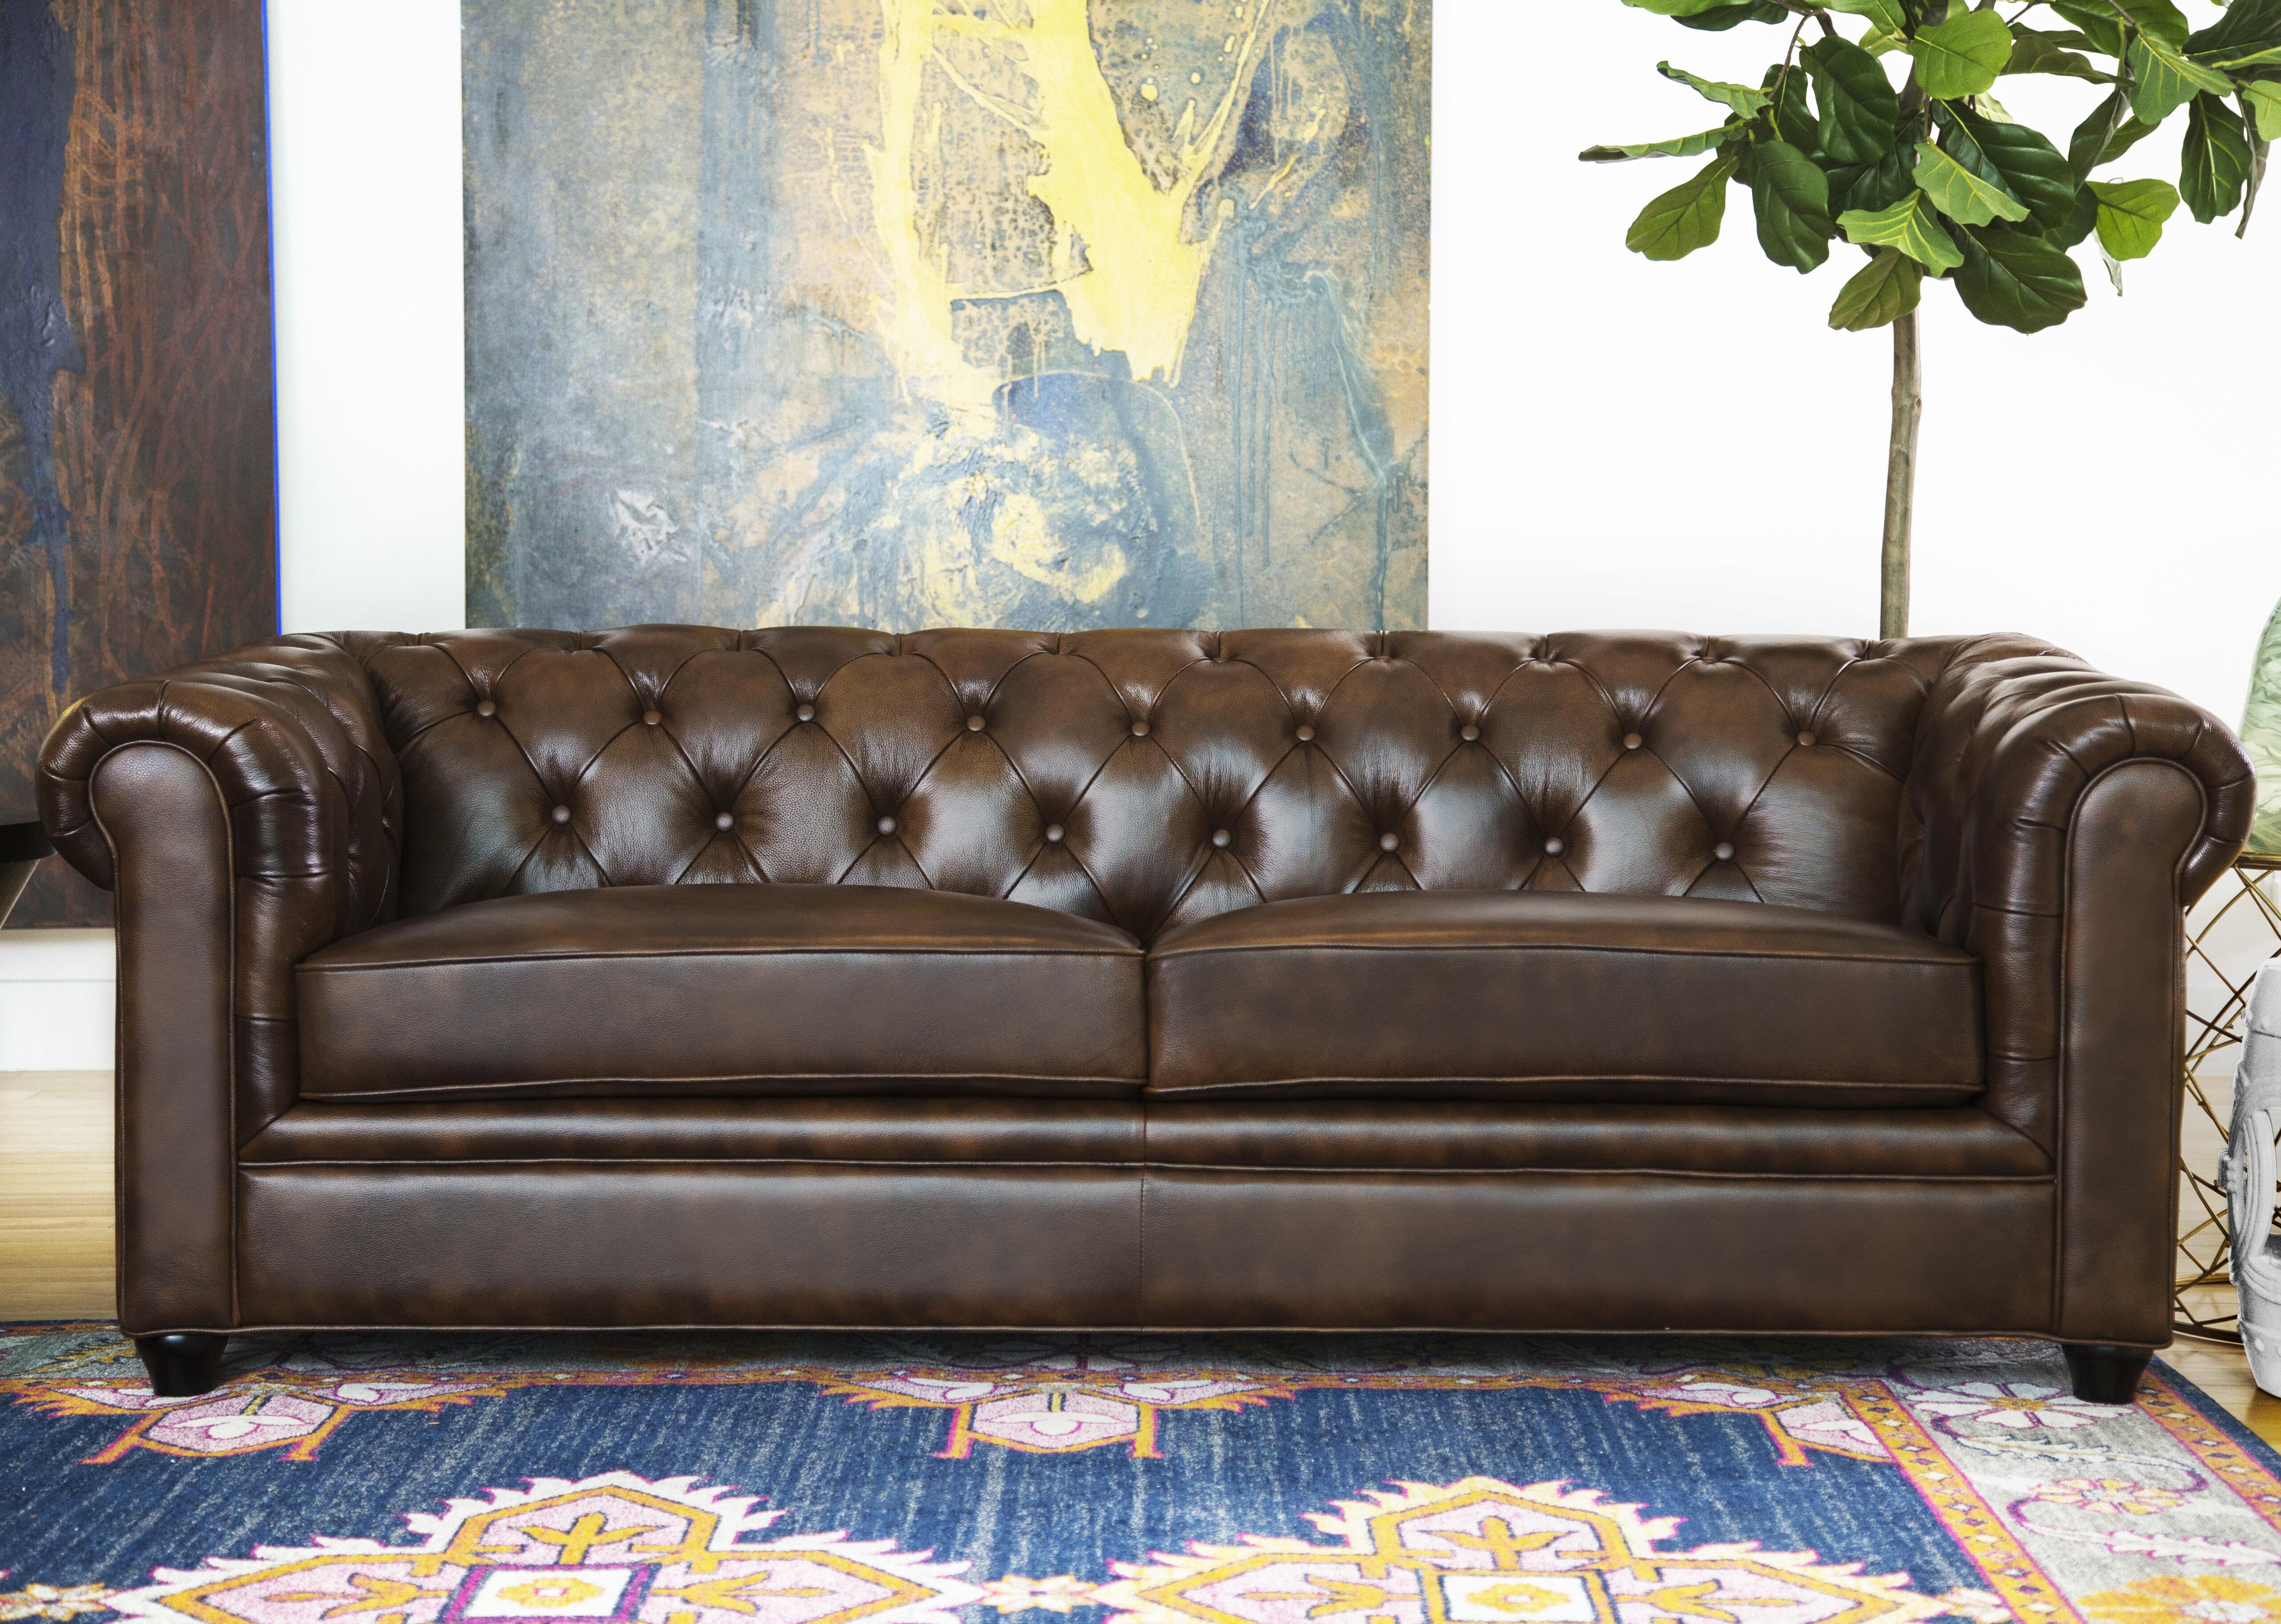 Cleaning 101: How to Clean a Leather Sofa | Wayfair